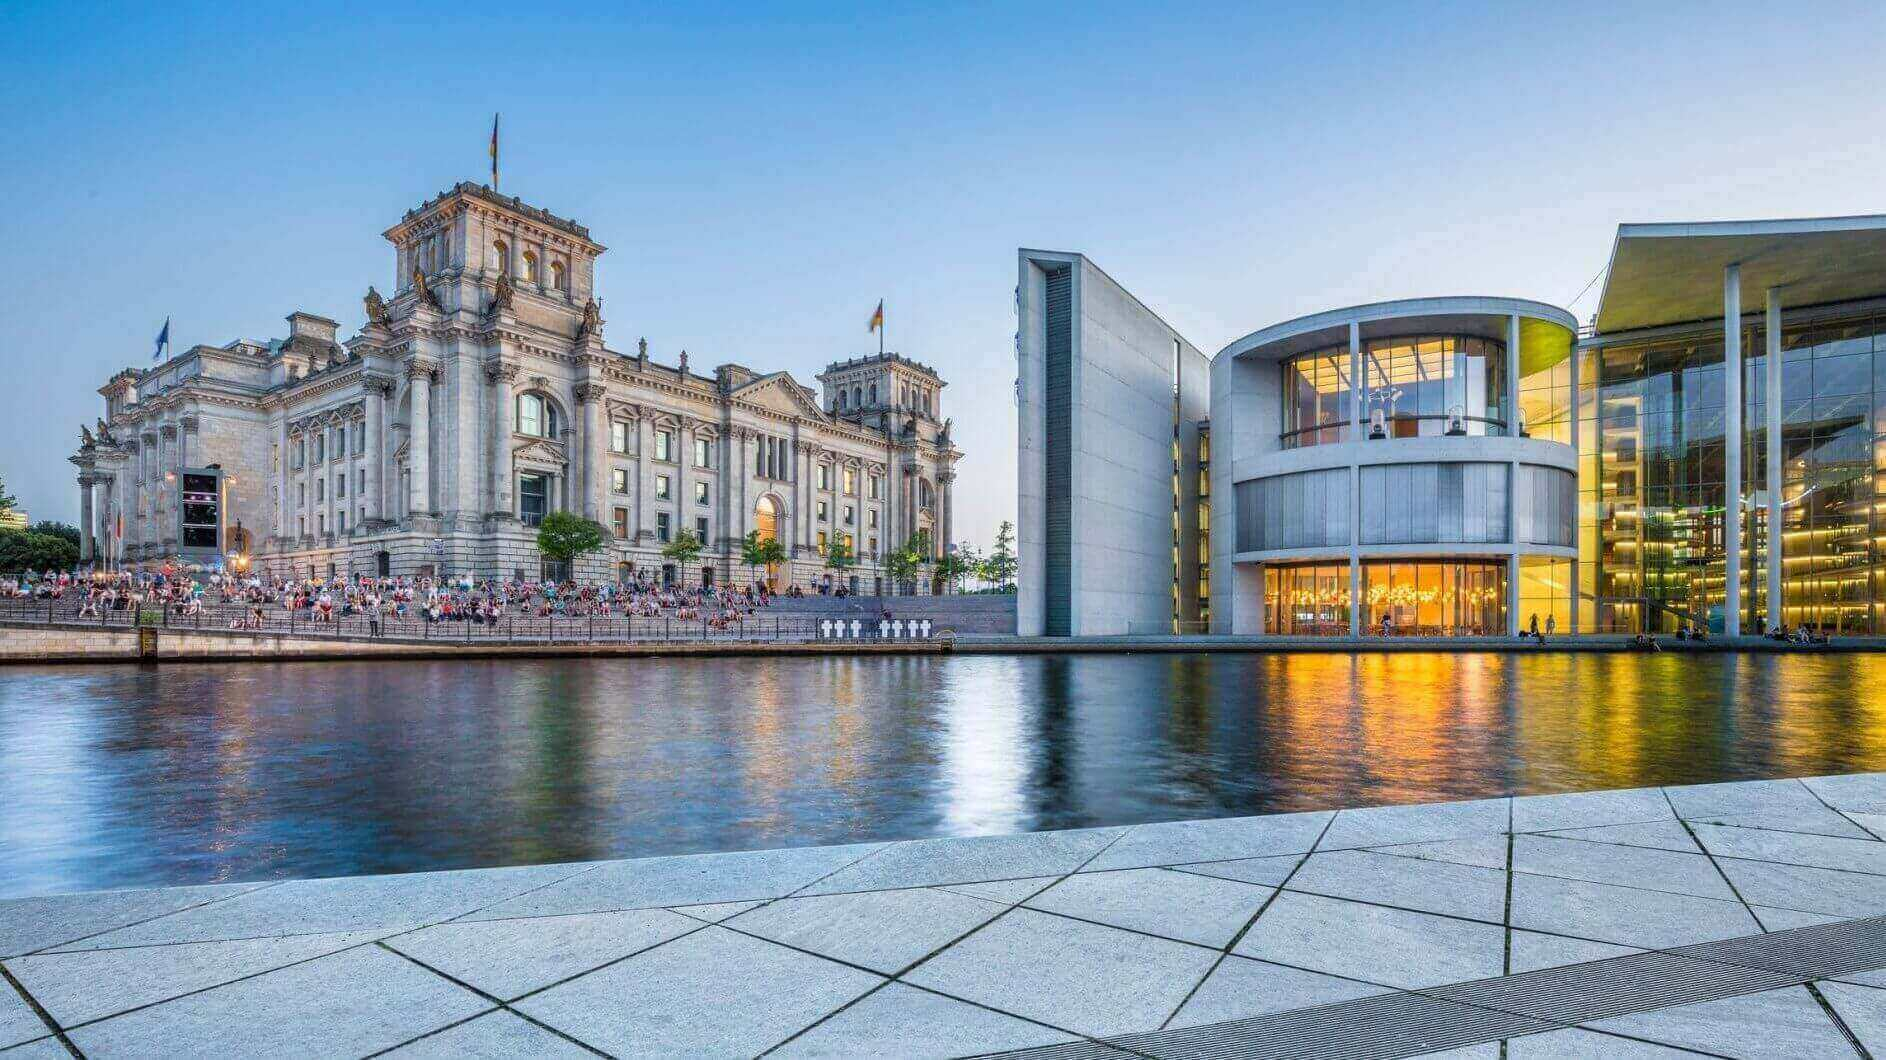 Berlin's Power Plant has 3D Printed Parts for More Efficient Electricity | All3DP